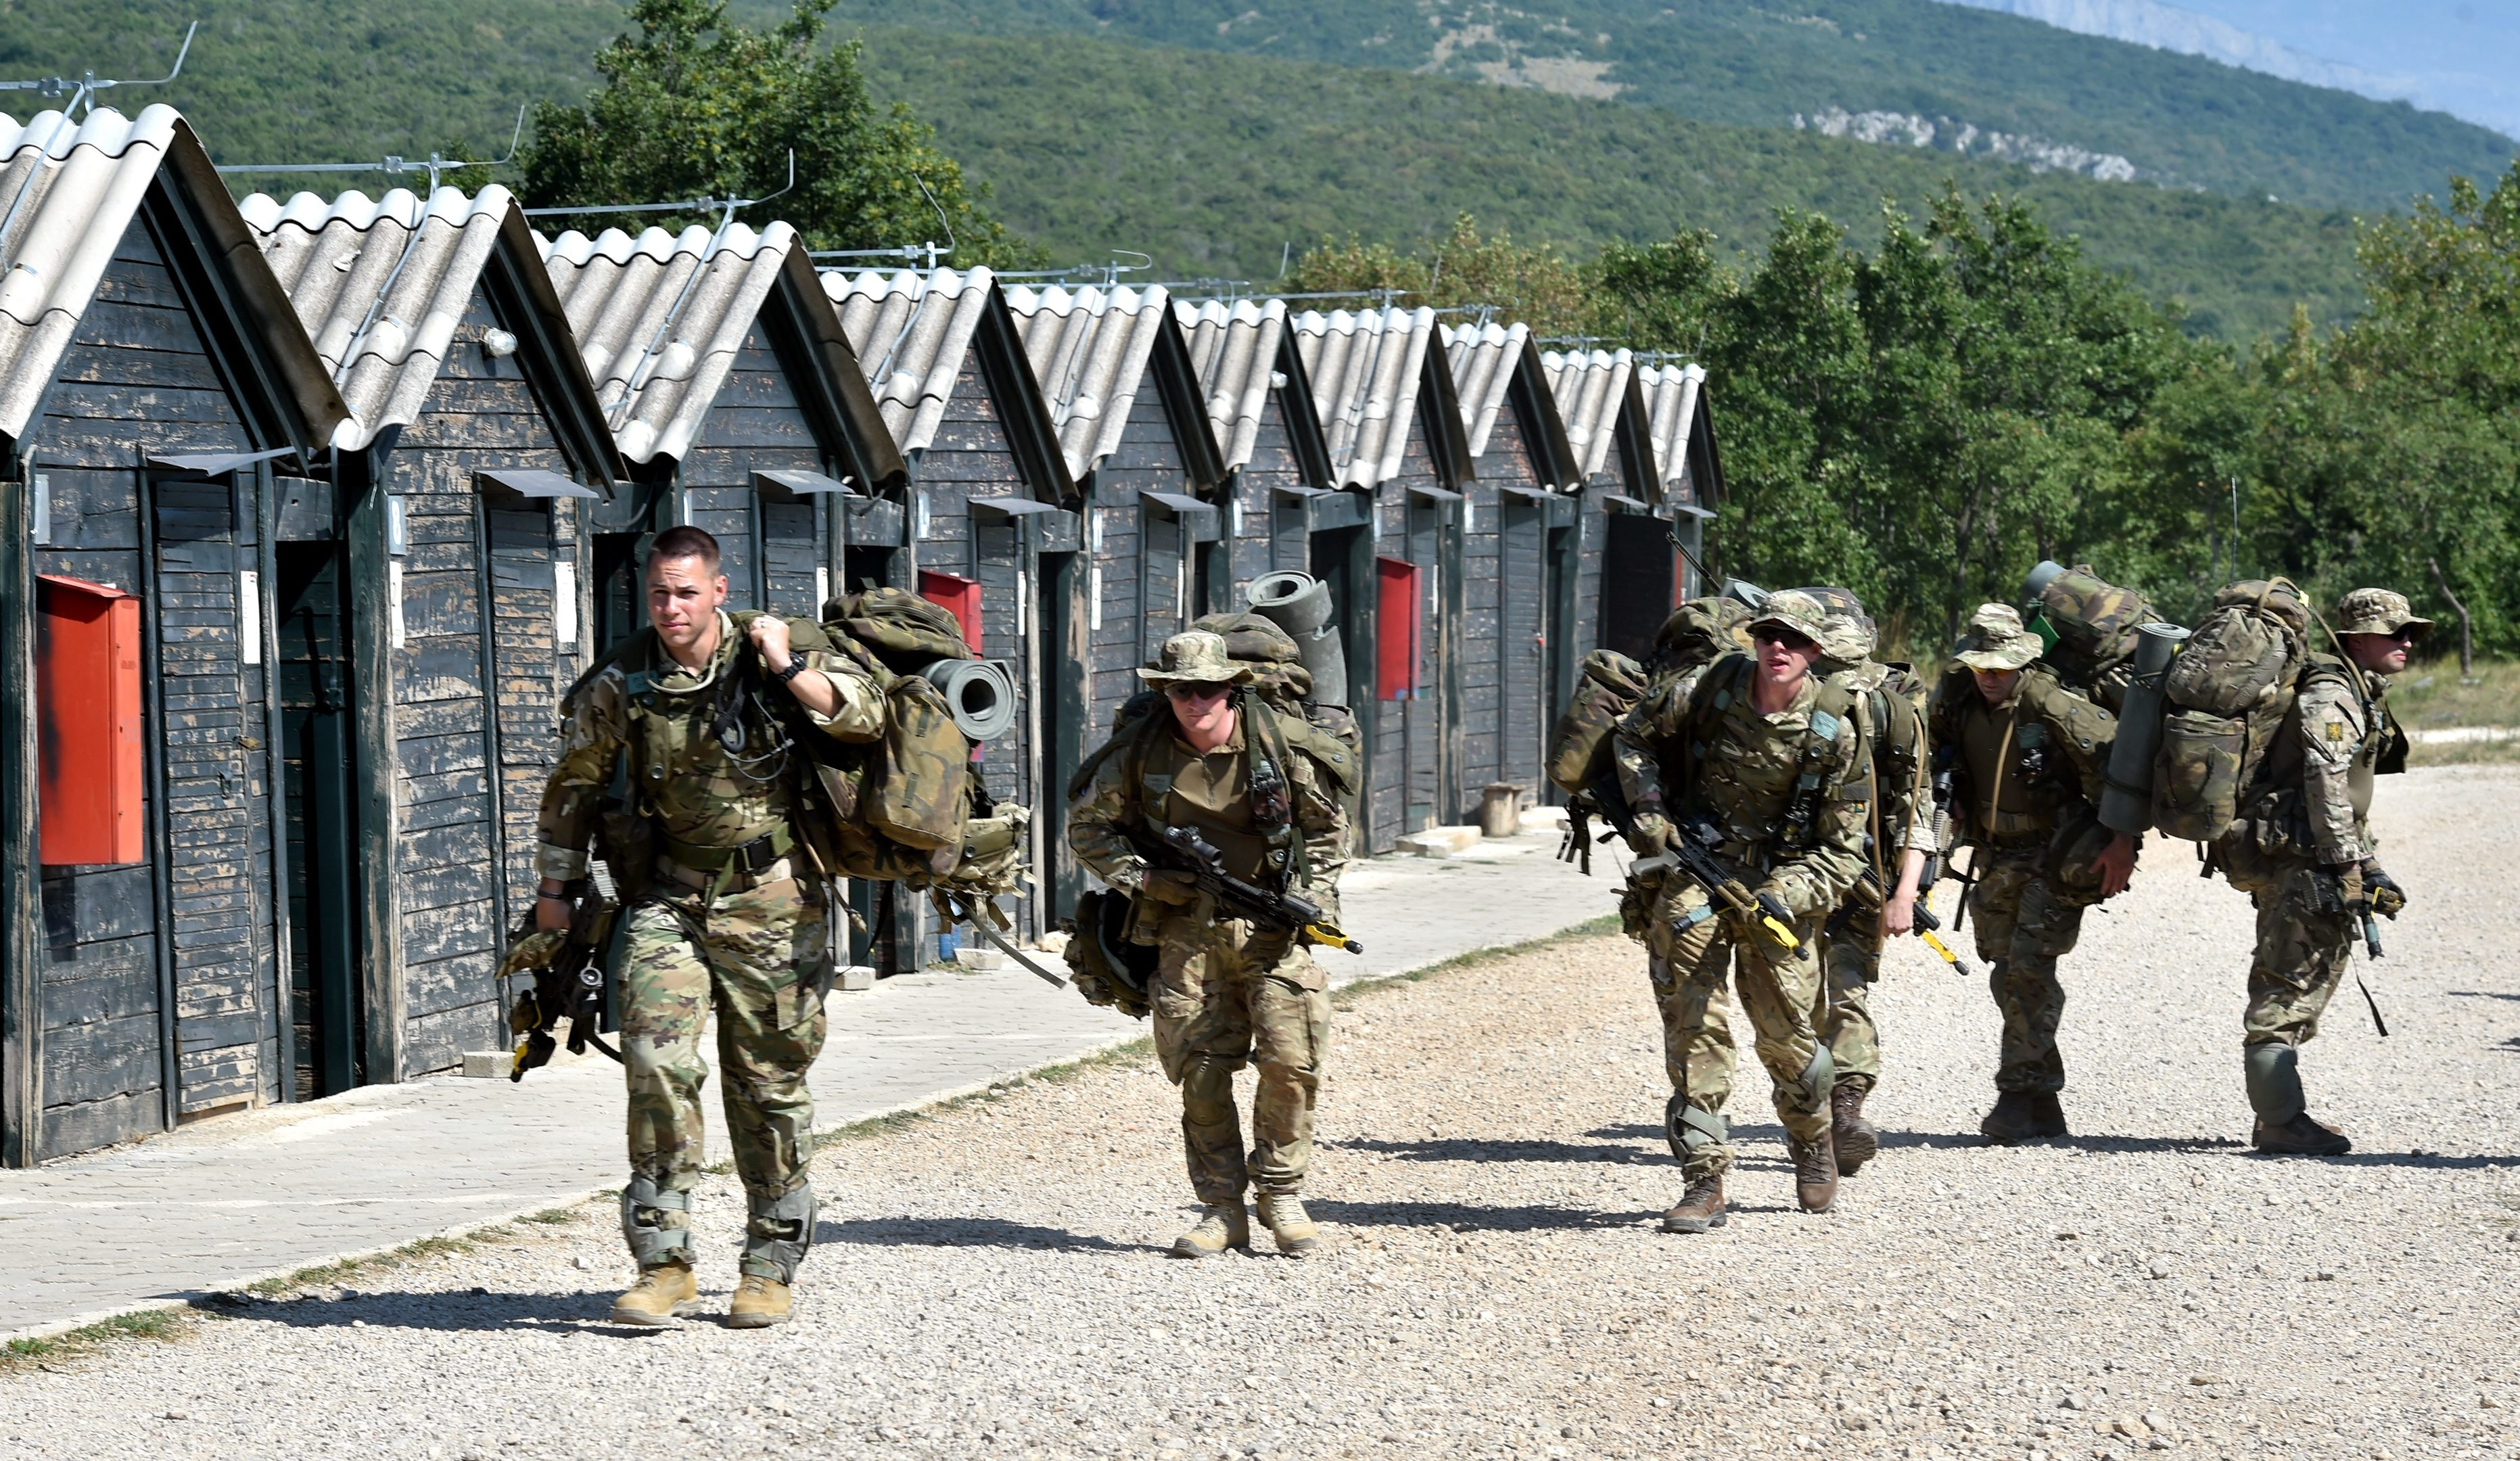 7 Scots D Company heading out on exercise at Red Earth in Croatia